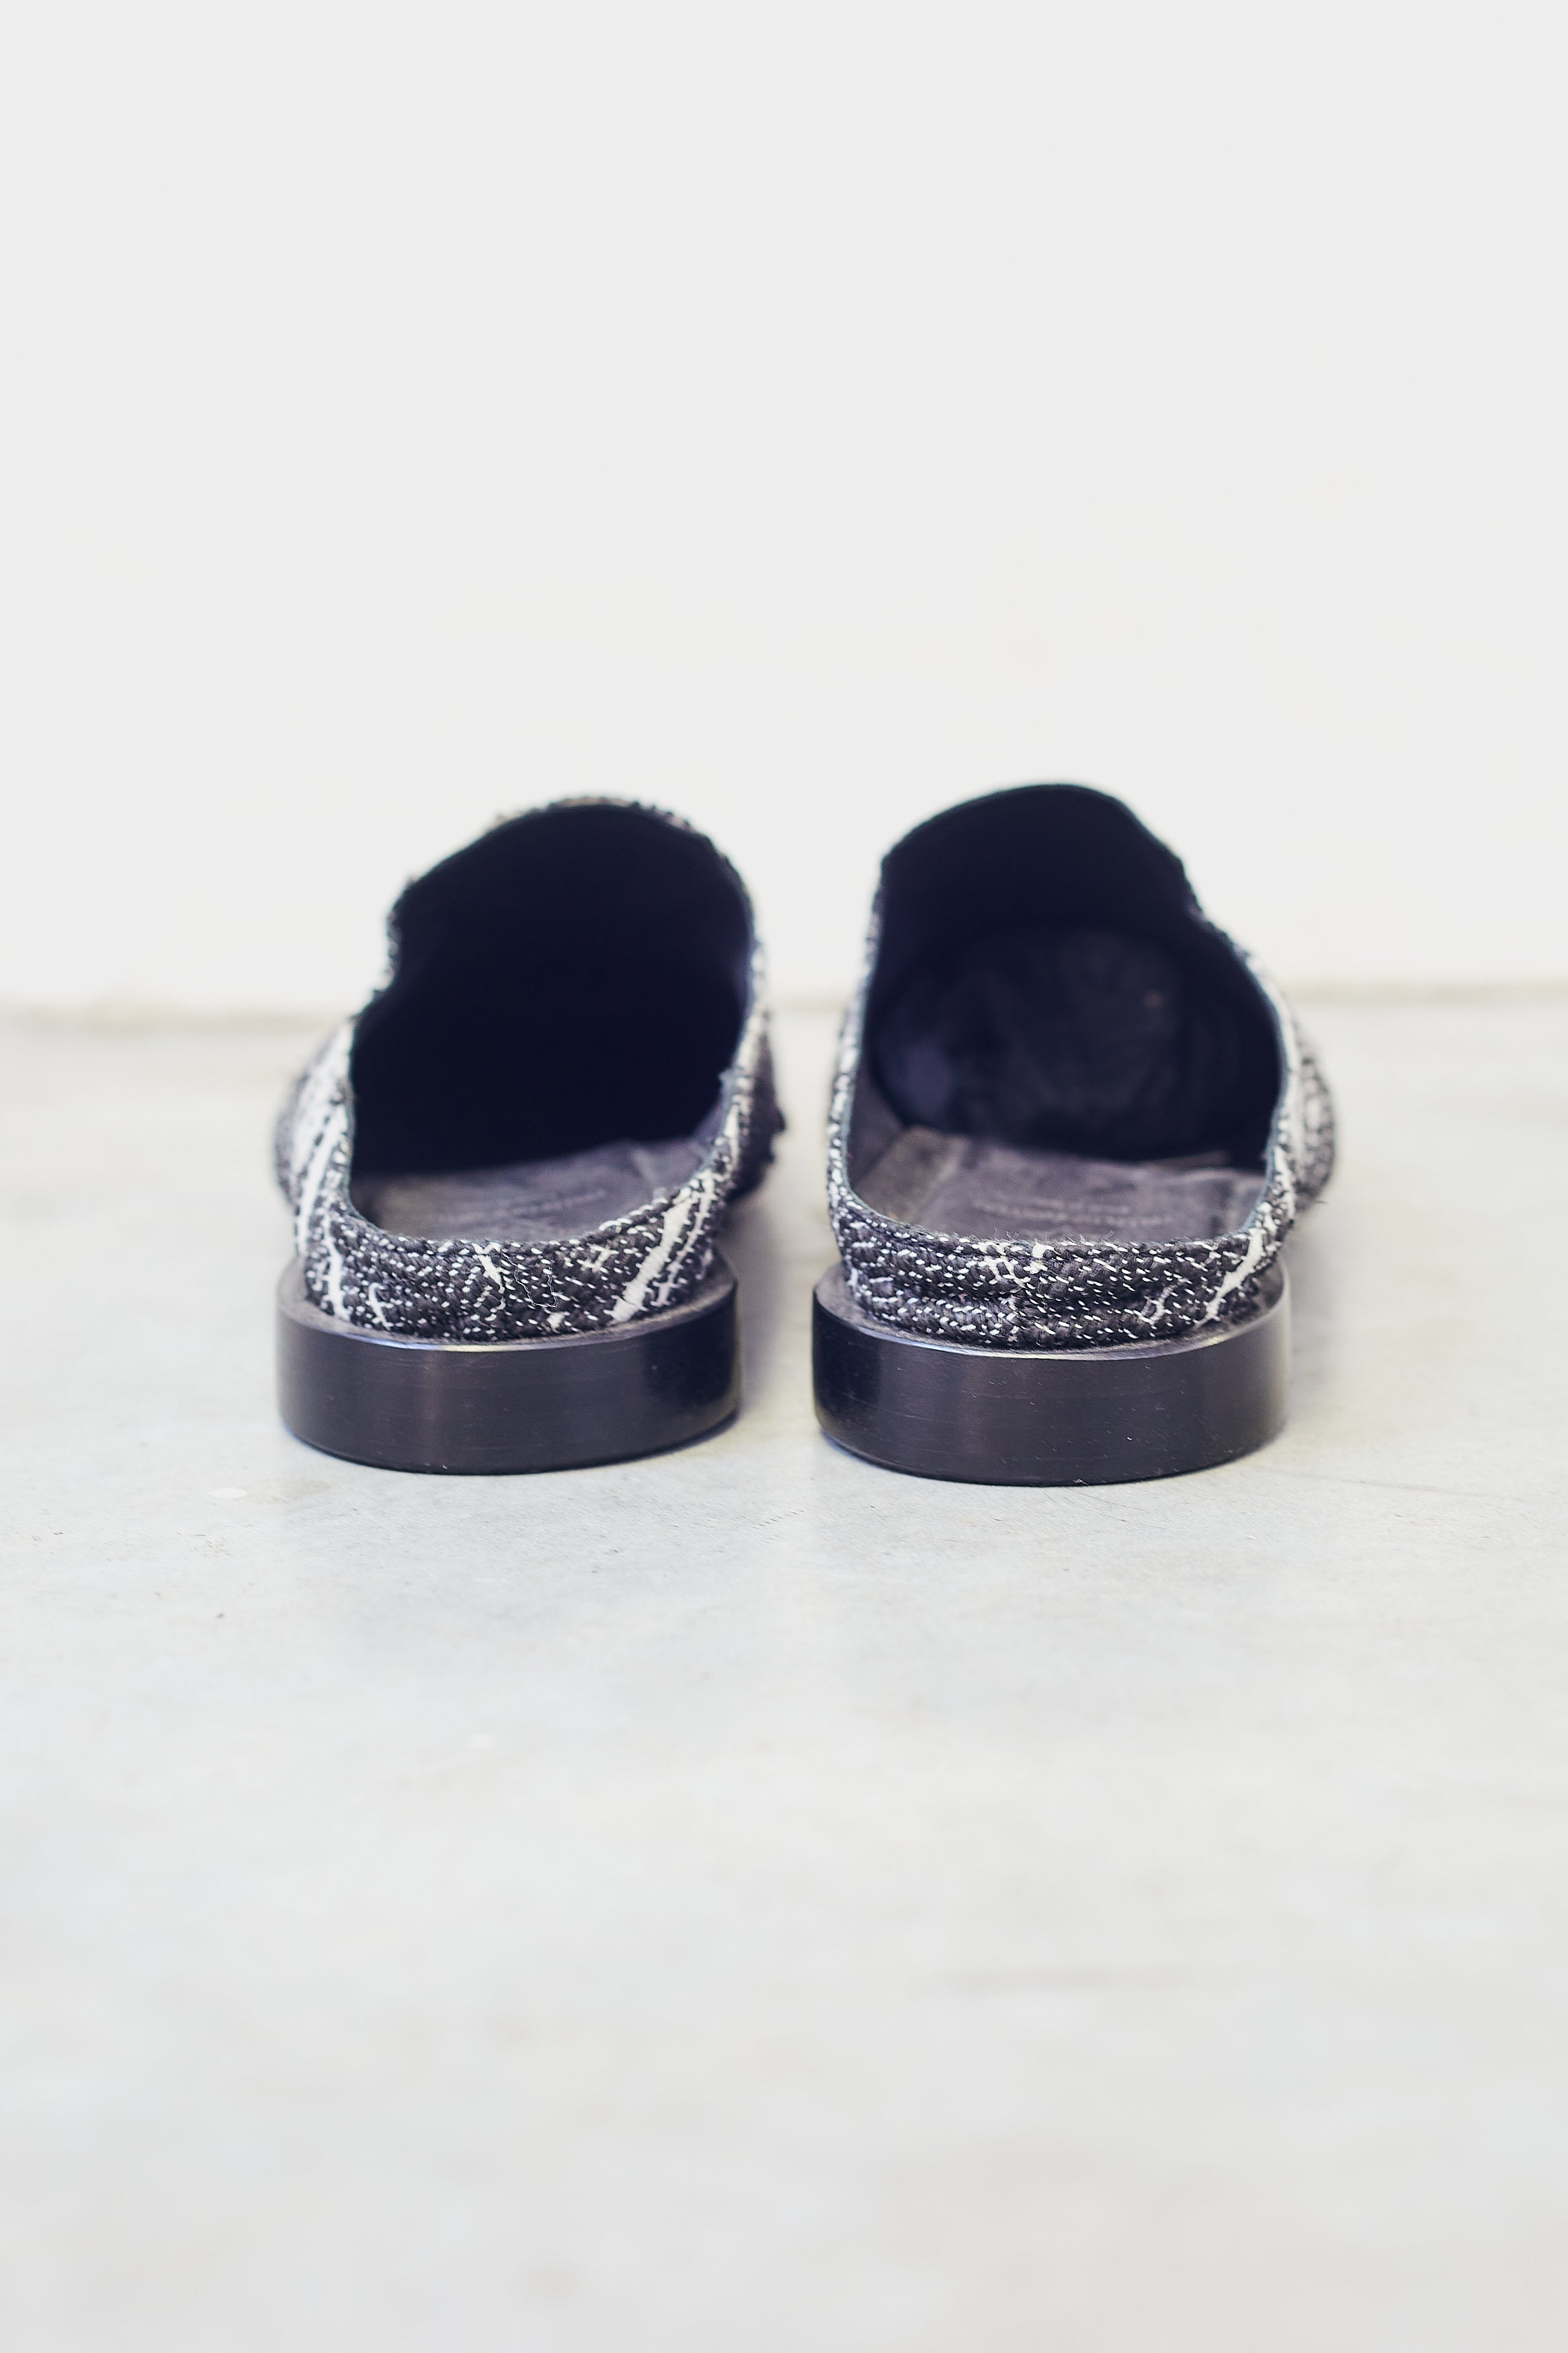 RICHARD'S SLIPPER ⎟BYE GOOD X GOOD BYE ⎟MEN